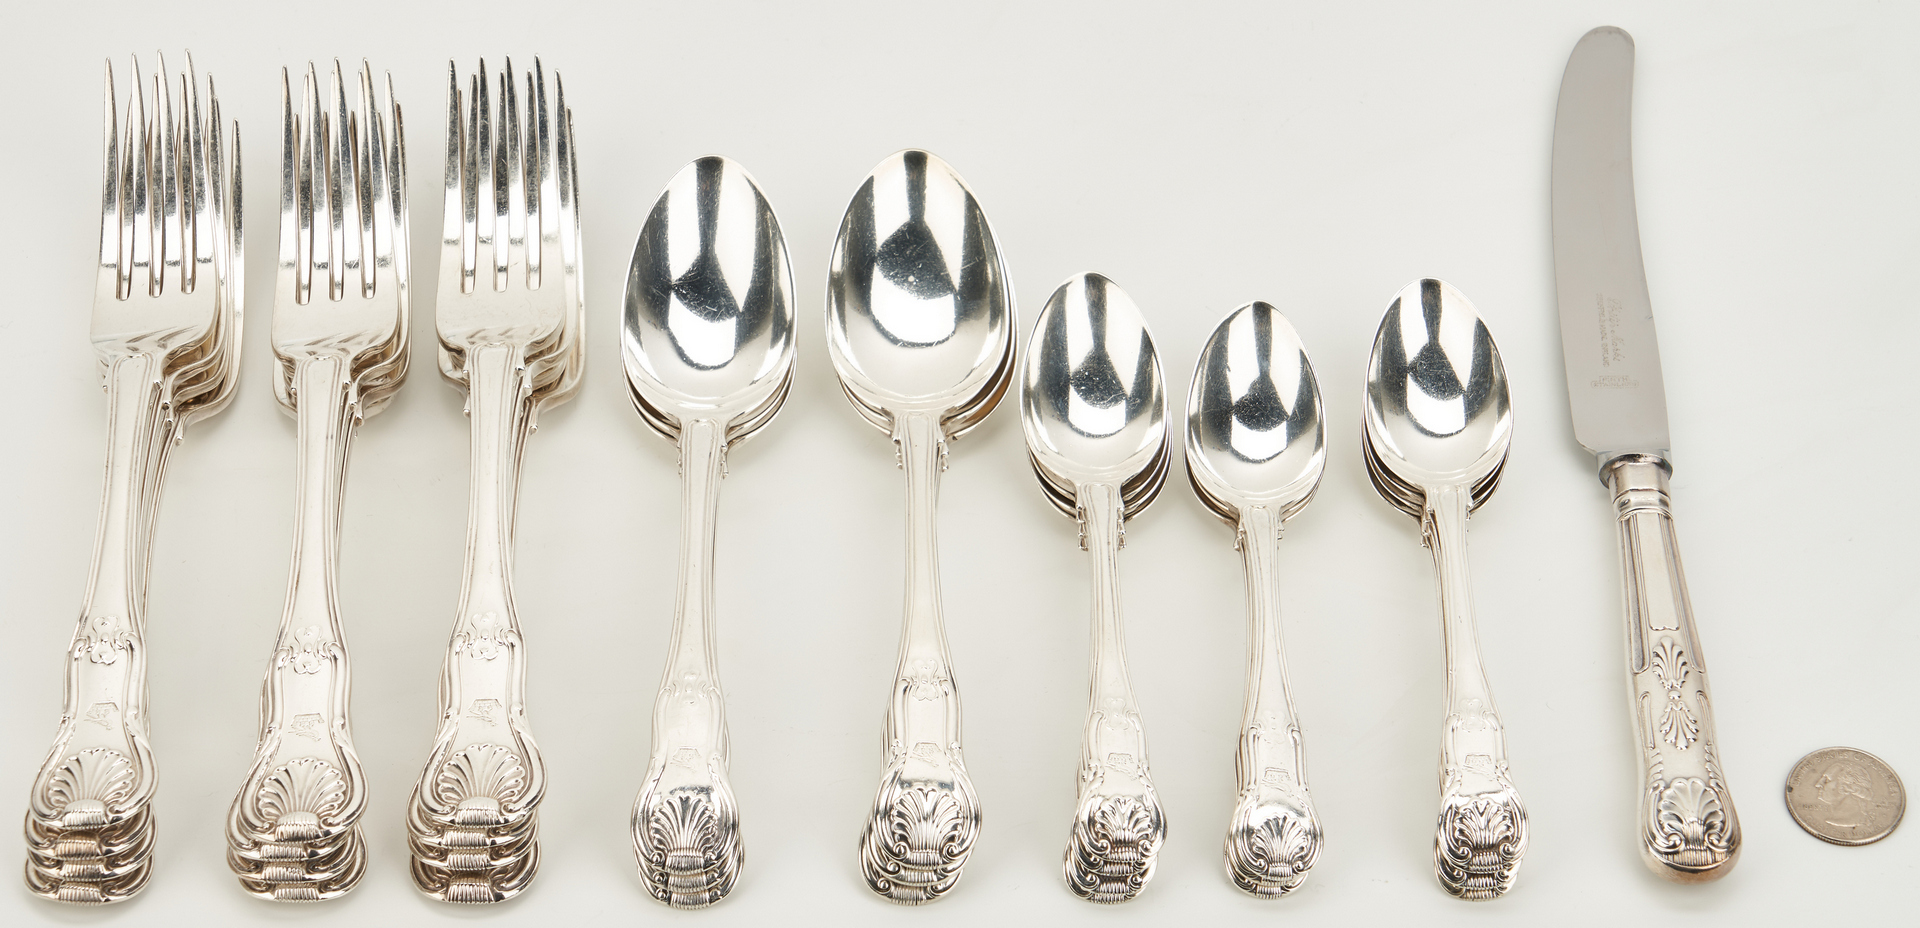 Lot 67: 30 pcs King Pattern Sterling Flatware: Eley & Fearn, Higgins